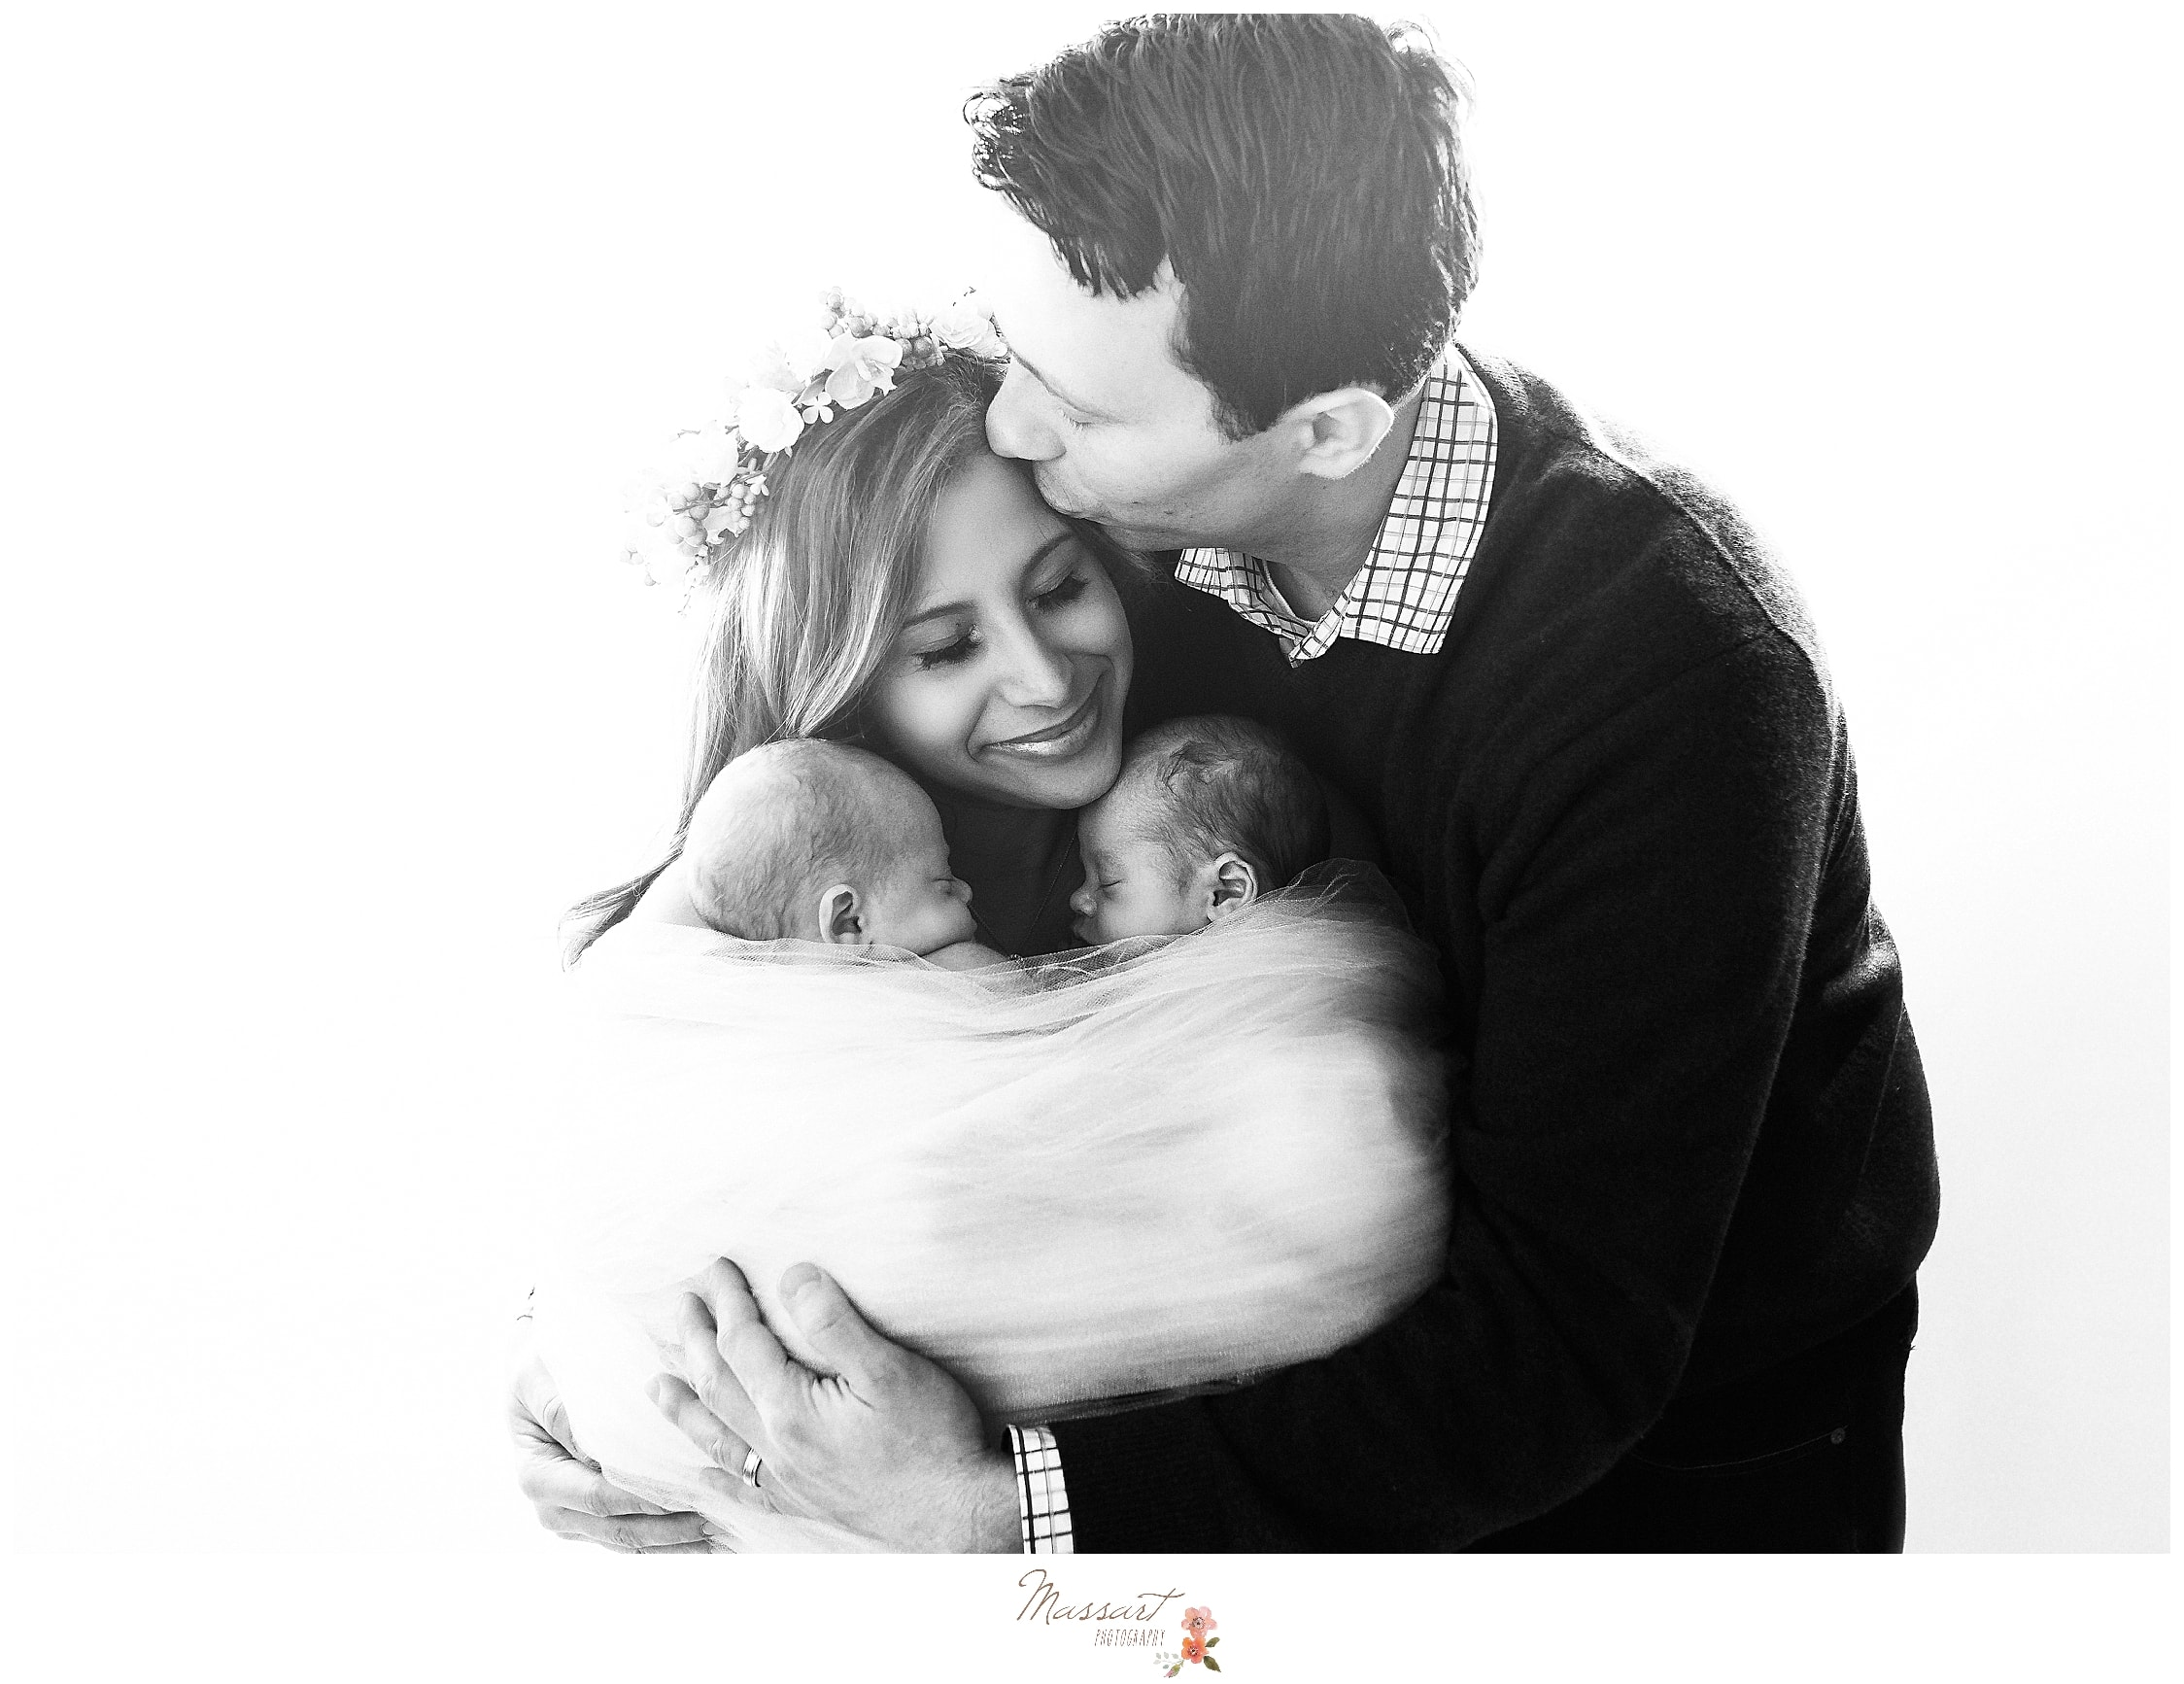 A sweet moment of this family during their newborn photography session captured by Massart Photography